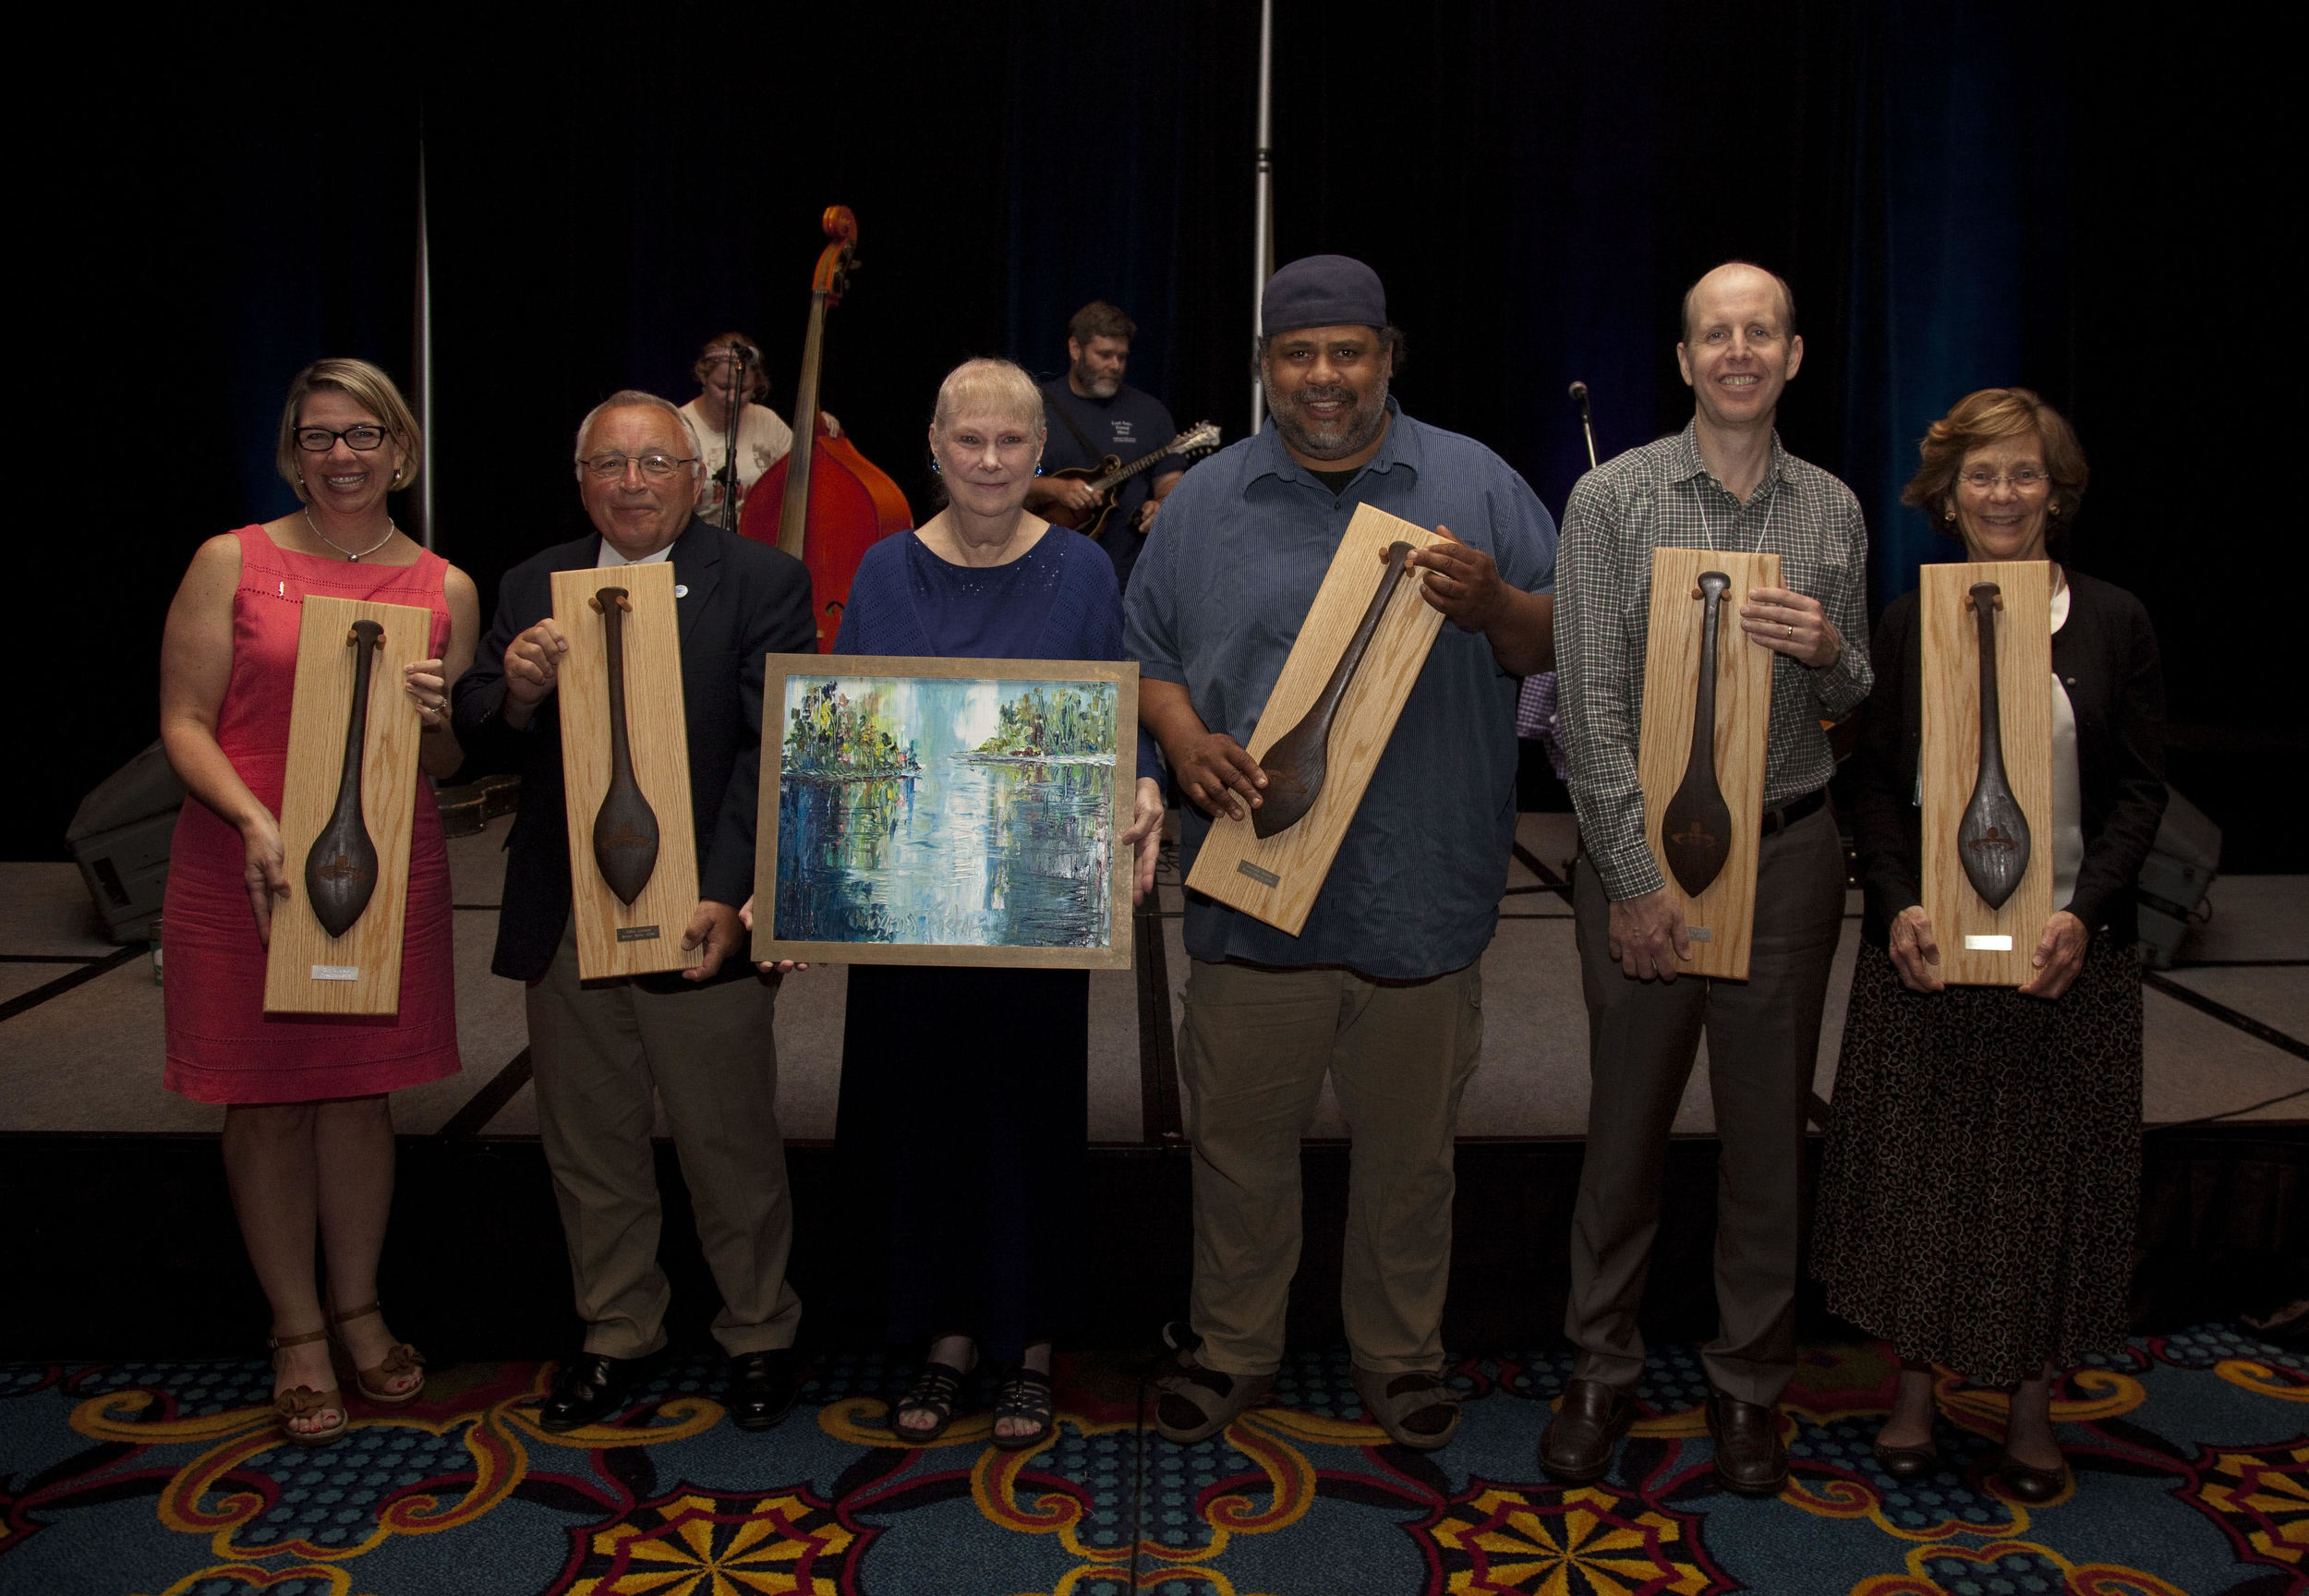 2016 National River Heroes and Compton Award Winner: (L to R): Casi (kc) Callaway (Mobile Baykeeper), John Linkes (Roaring Run Watershed Association), Wilma Surba (James Compton Achievement Award Winner, Subra Company), Derrick Evans (Bridge the Gulf Project), Andrew Purkey (National Fish and Wildlife Federation), and Jan Goldman-Carter (National Wildlife Federation).